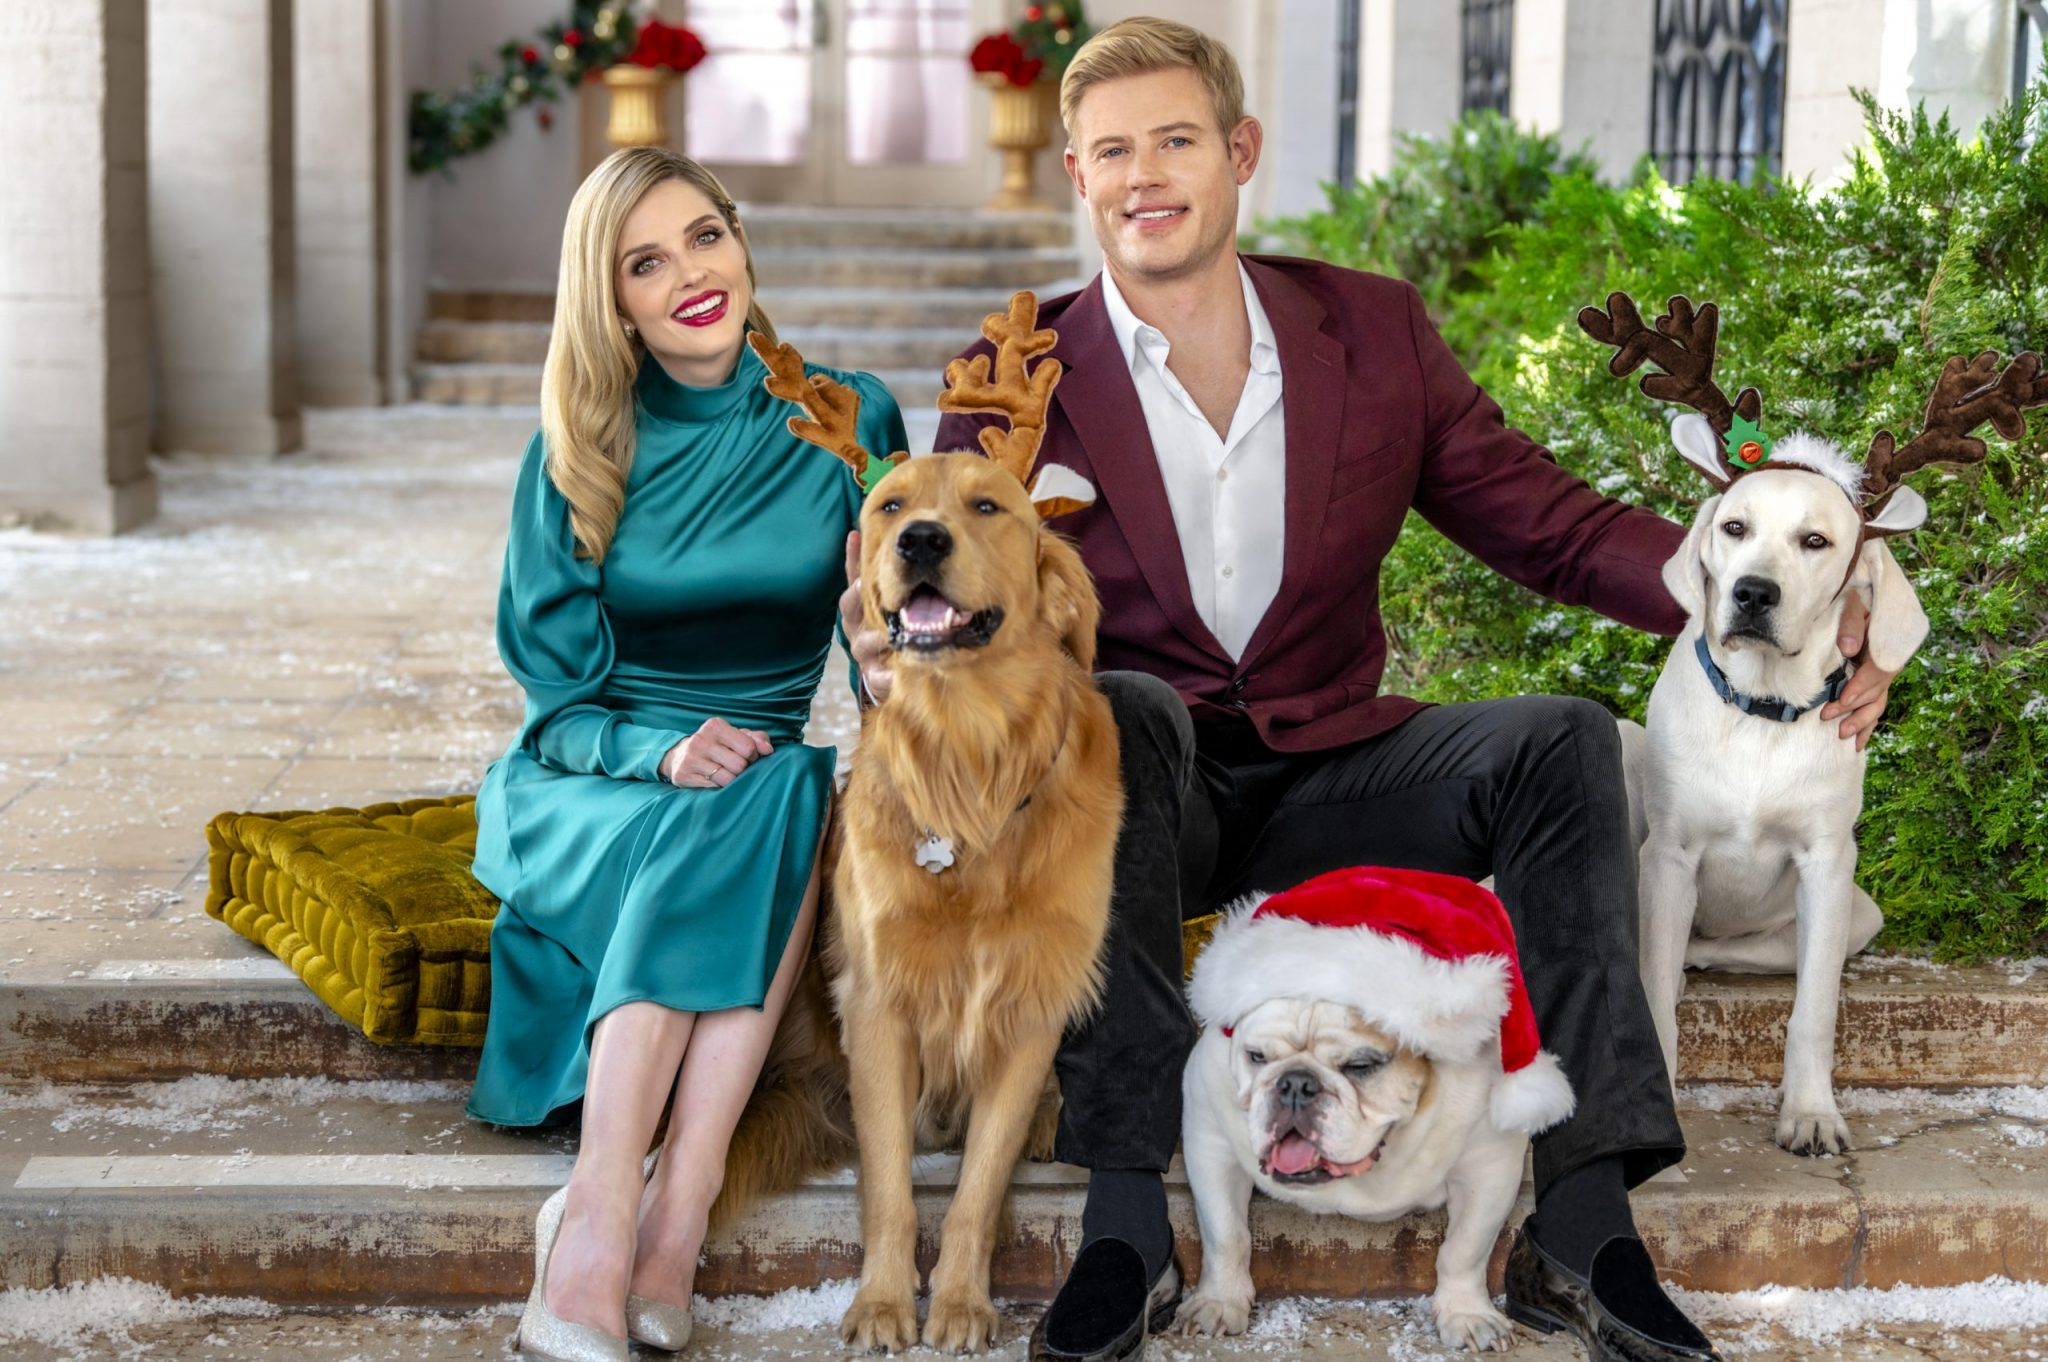 Christmas movies 2020 Photo: Jen Lilley, Trevor Donovan Credit: ©2020 Crown Media United States LLC/Photographer: Kim Nunneley/Alexx Henry Studios, LLC